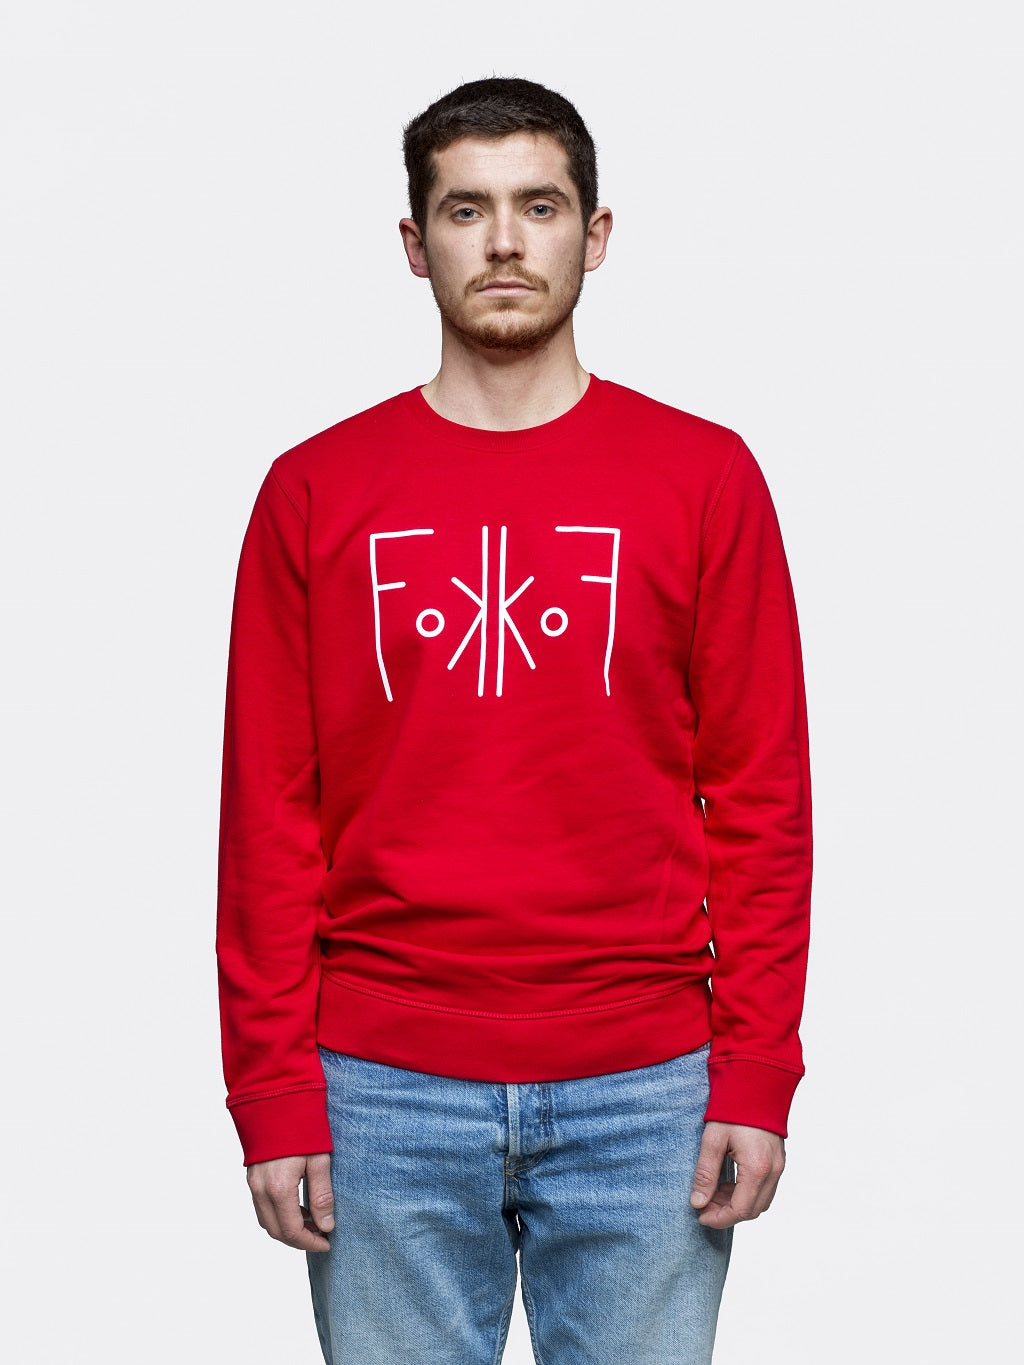 FokkoF Sweater - Loving Red